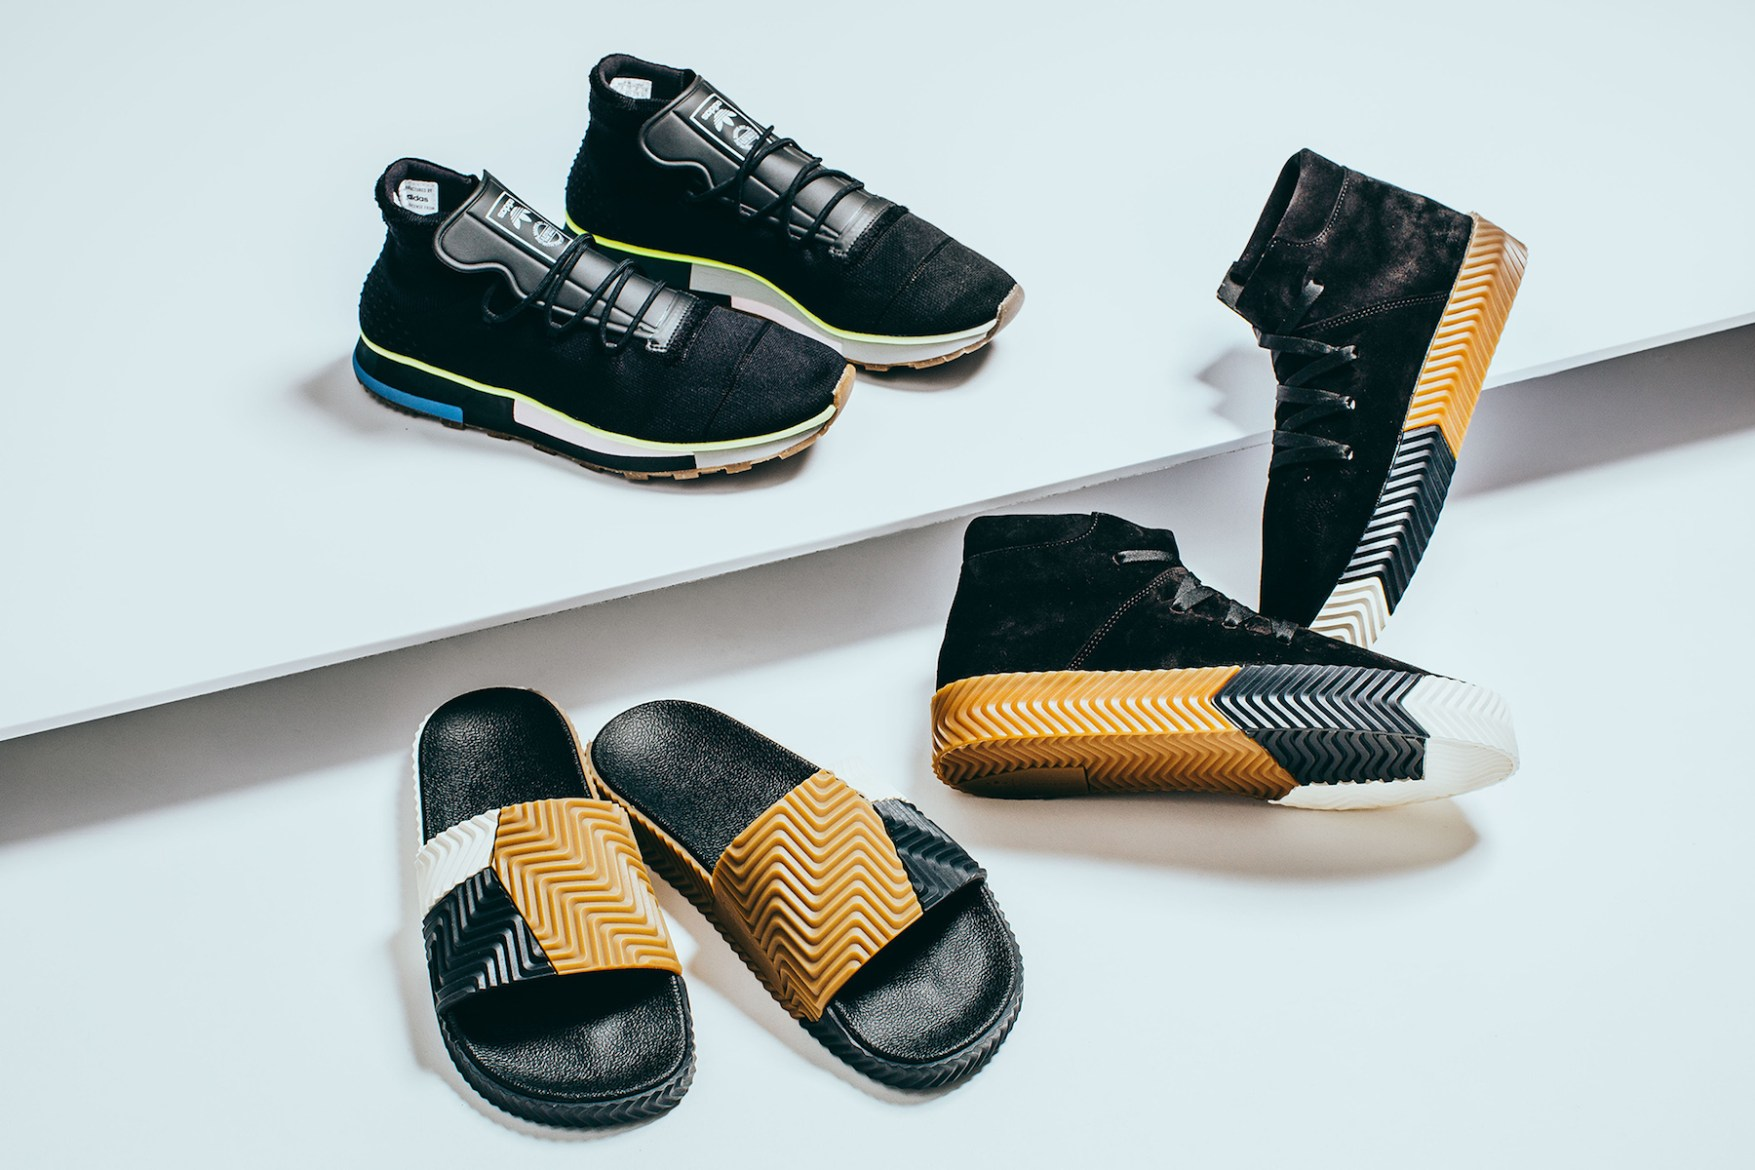 adidas Originals by Alexander Wang 聯名系列 Season 2 第二波鞋履新作